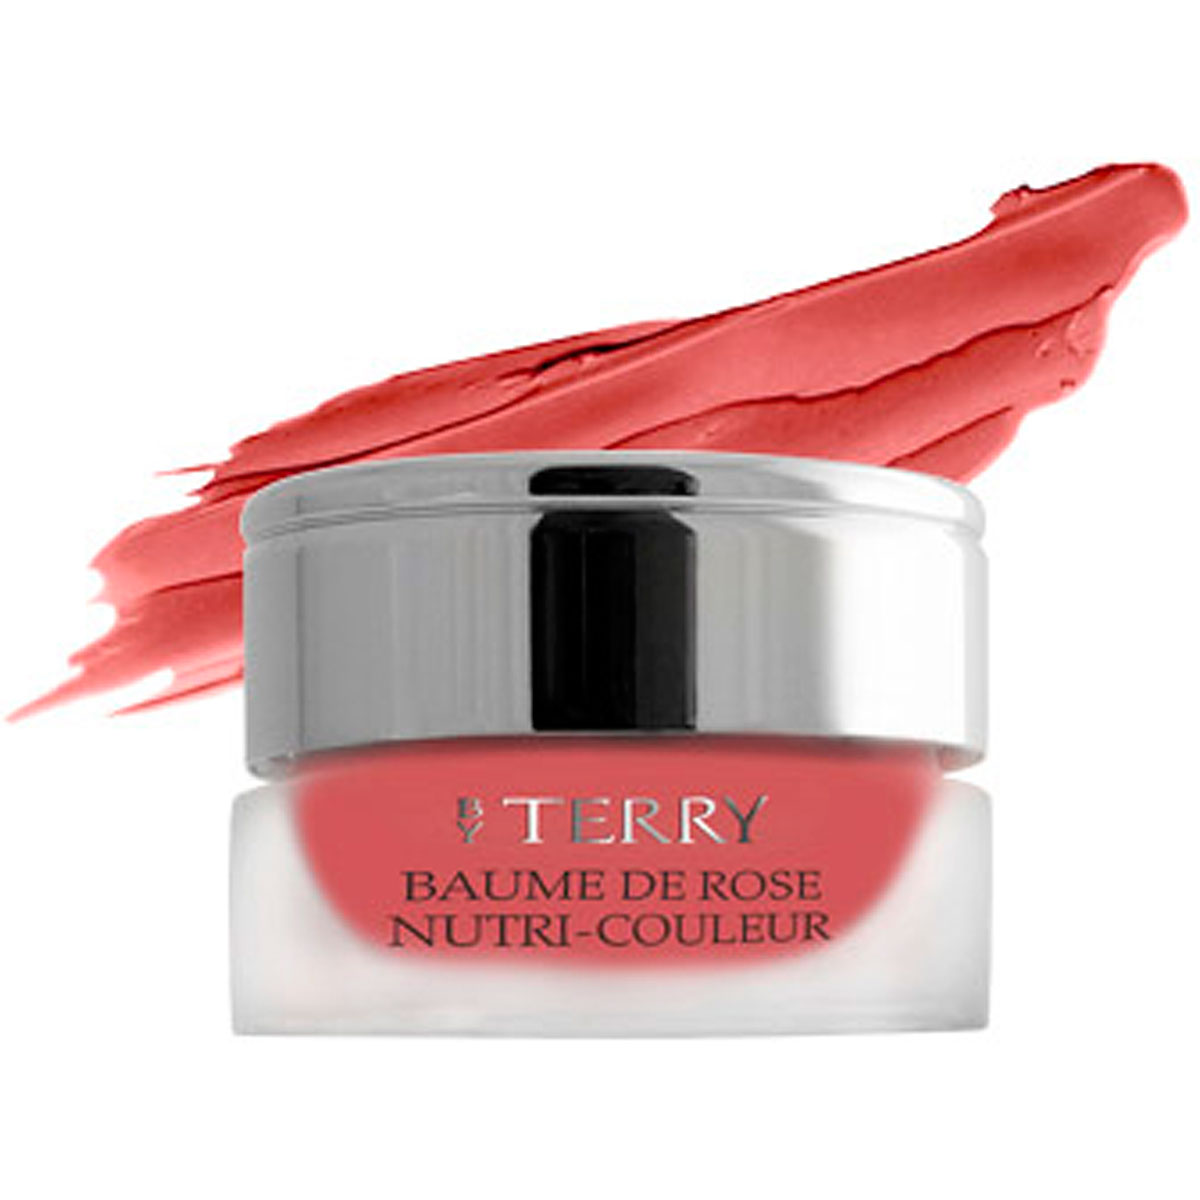 By Terry Makeup for Women, Baume De Rose - Tinted Lip Balm - N 6 Tofee Cream, 2019, 7 gr